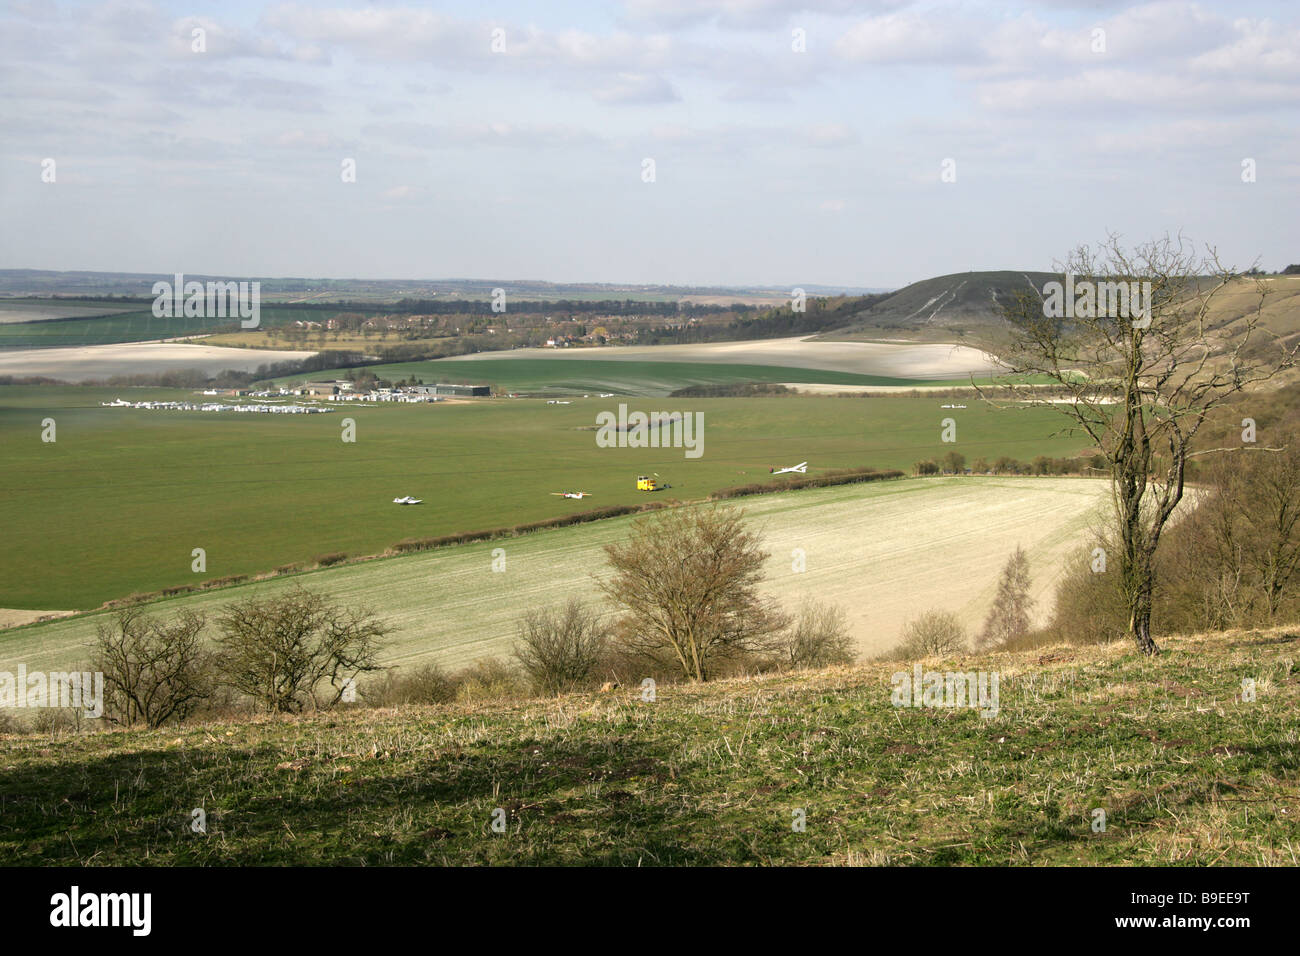 Dunstable Aerodrome, Gliding Club and Airfield, Dunstable Downs, Bedfordshire, UK - Stock Image